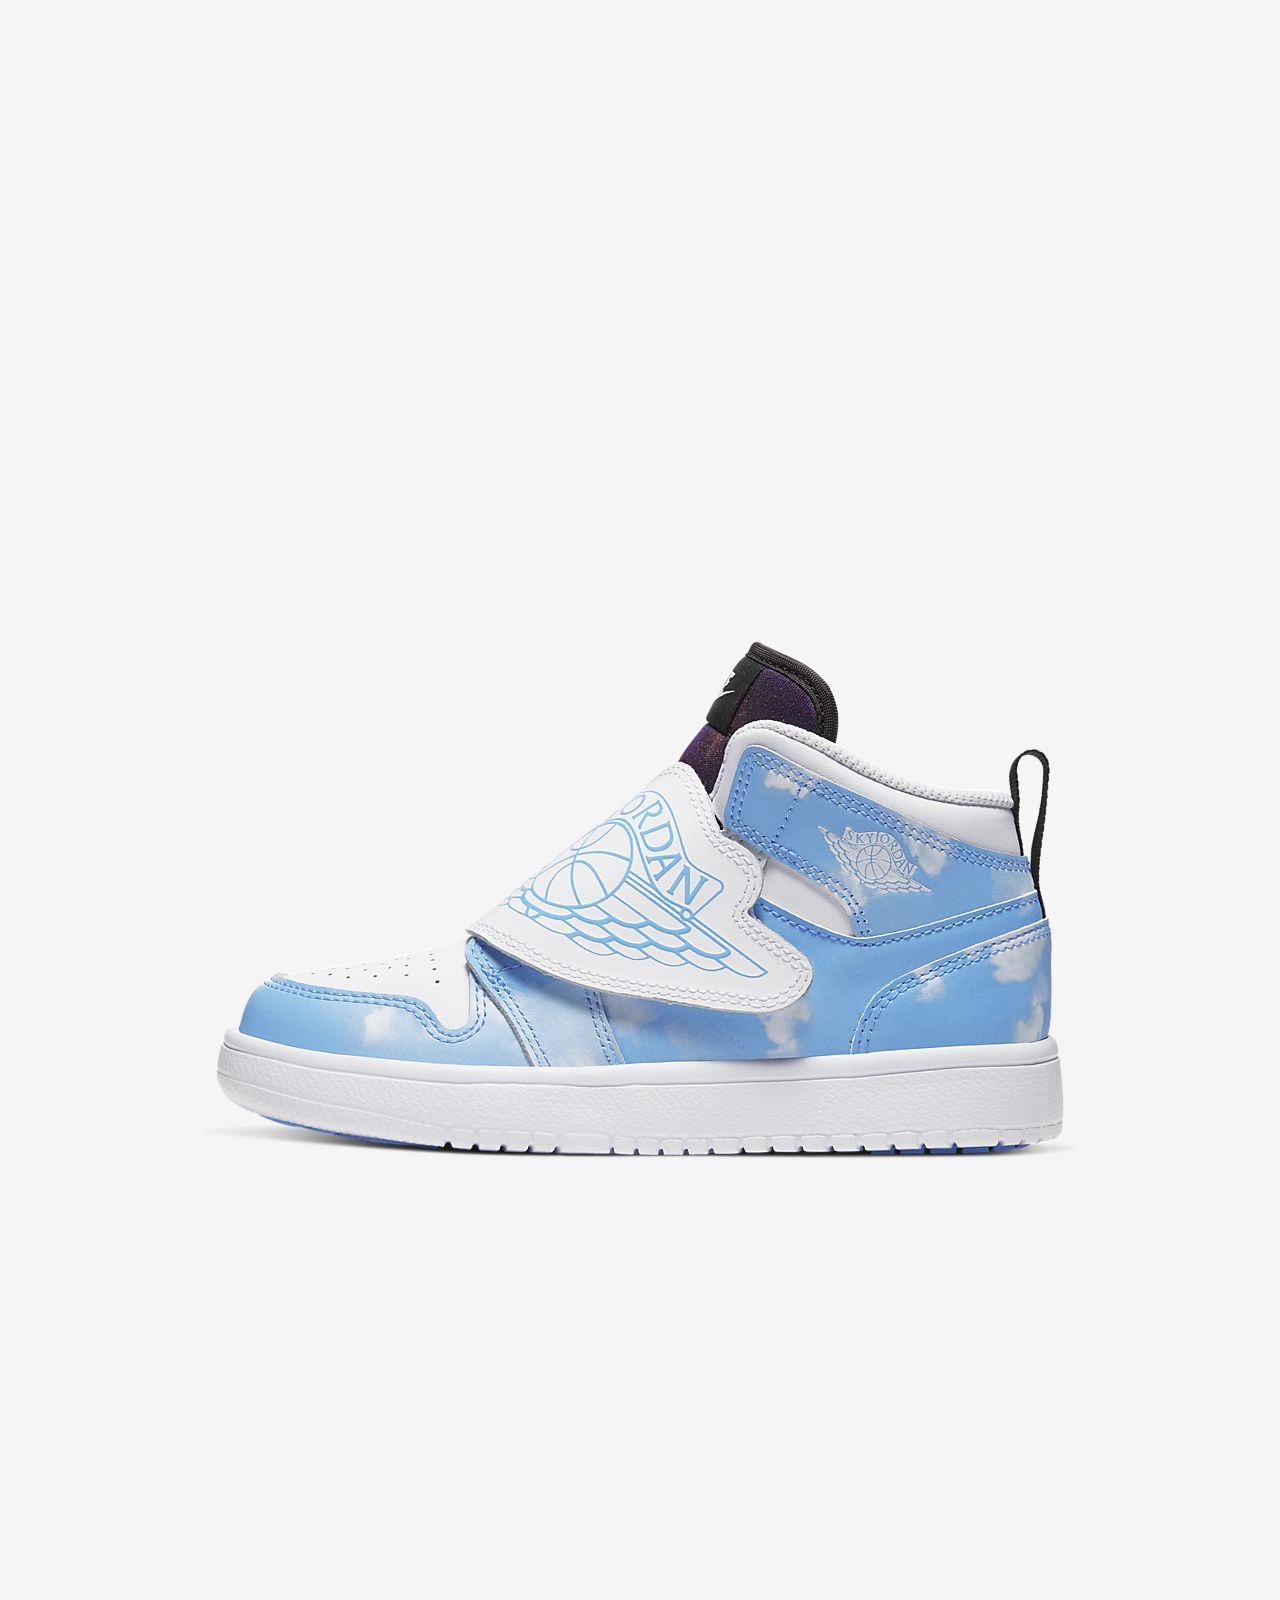 Sky Jordan 1 Fearless Younger Kids' Shoe